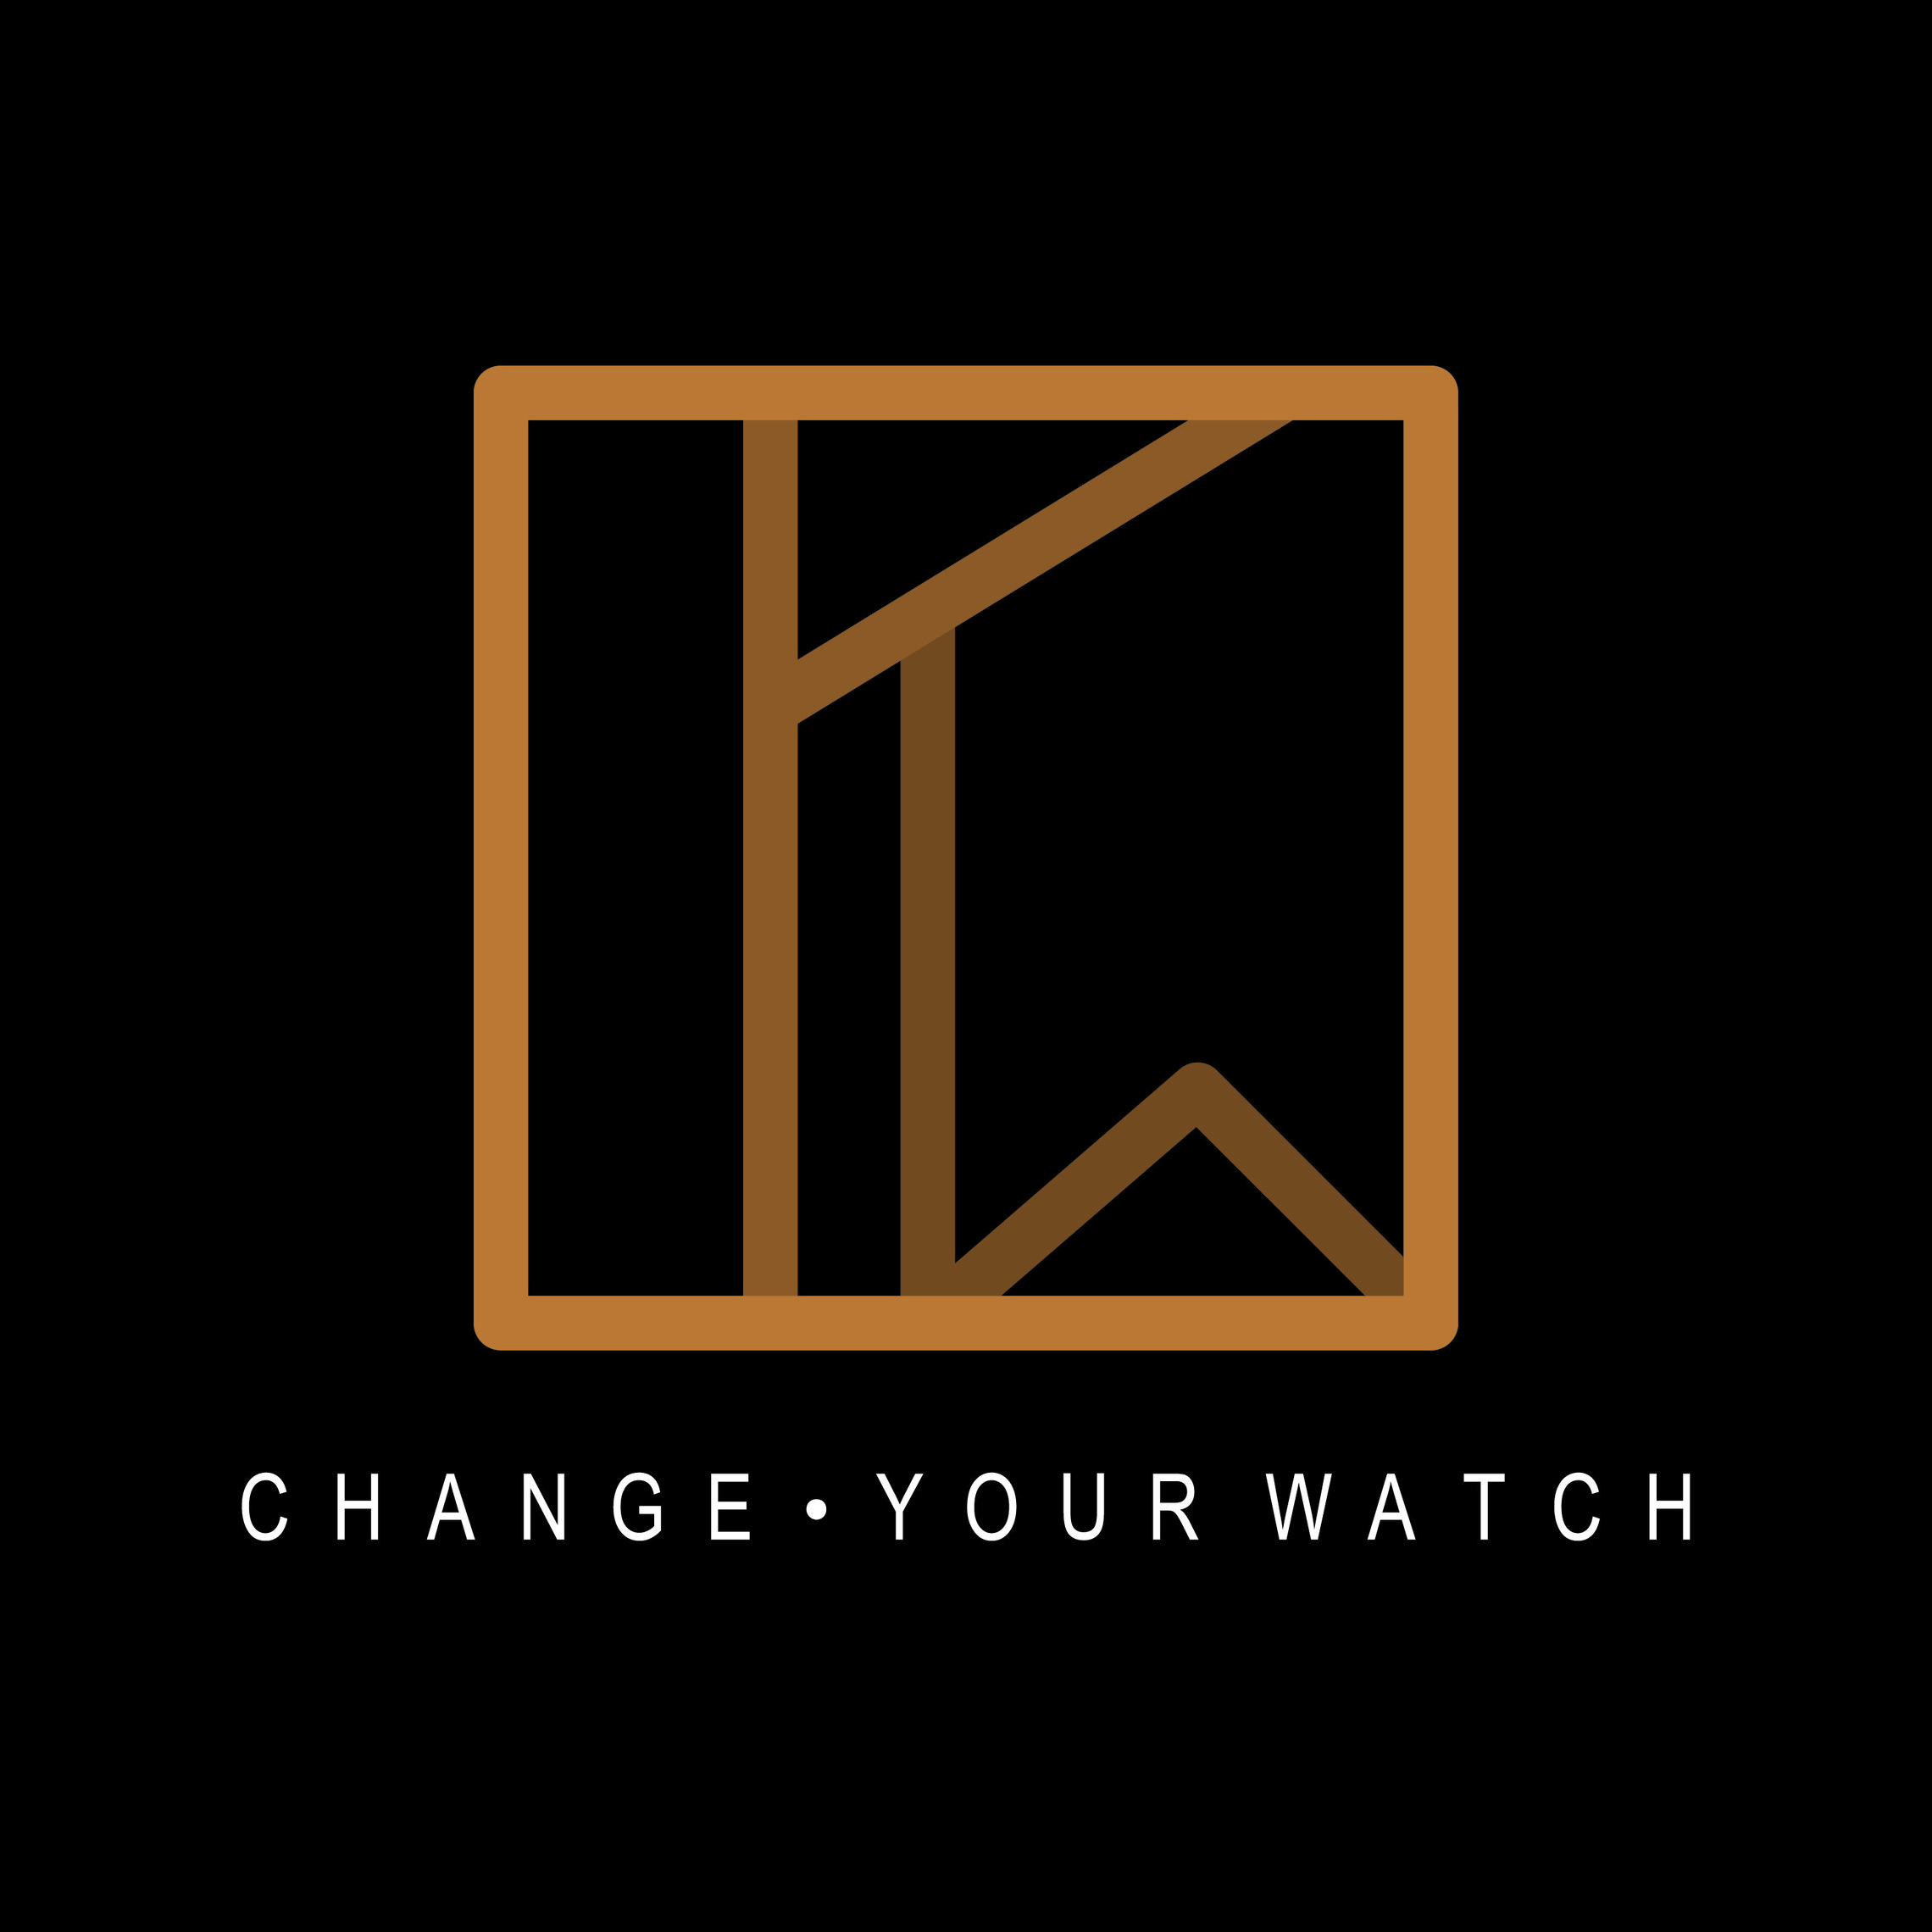 change your watch- company logo